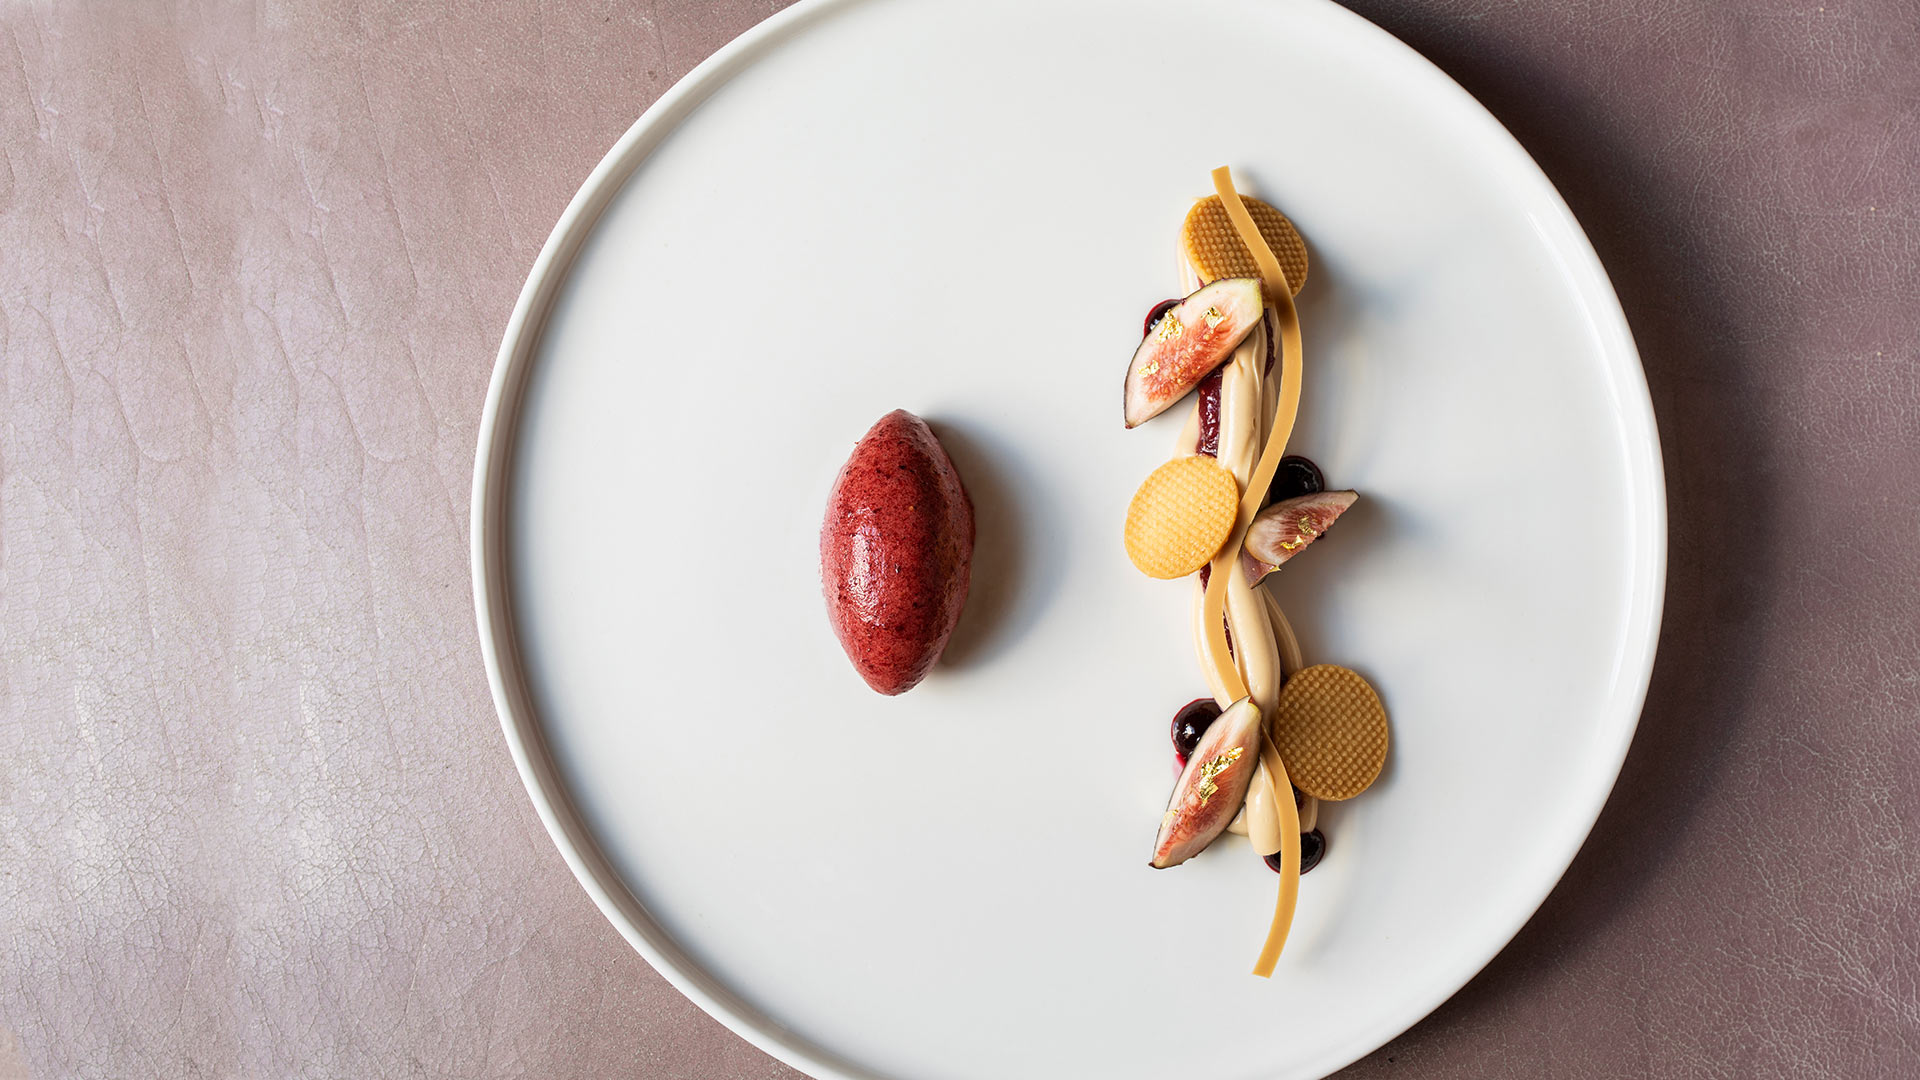 Fig-and-blackcurrant-sorbet,-caramelised-white-chocolate-cream-and-crunchy-almond-1920x1080